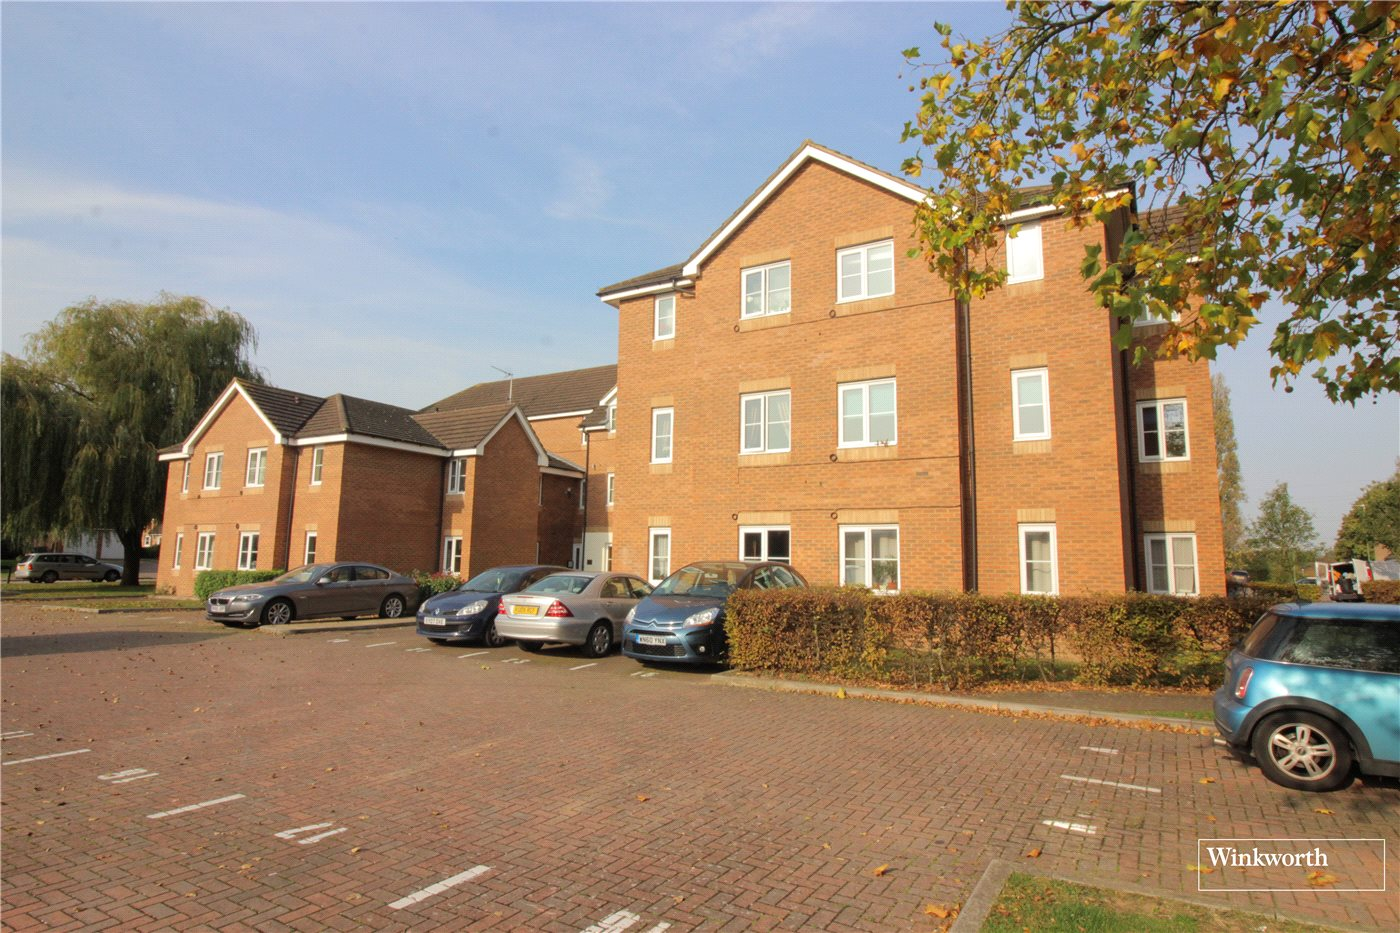 2 Bedrooms Flat for sale in Sommerville Court, Alconbury Close, Borehamwood, Hertfordshire, WD6